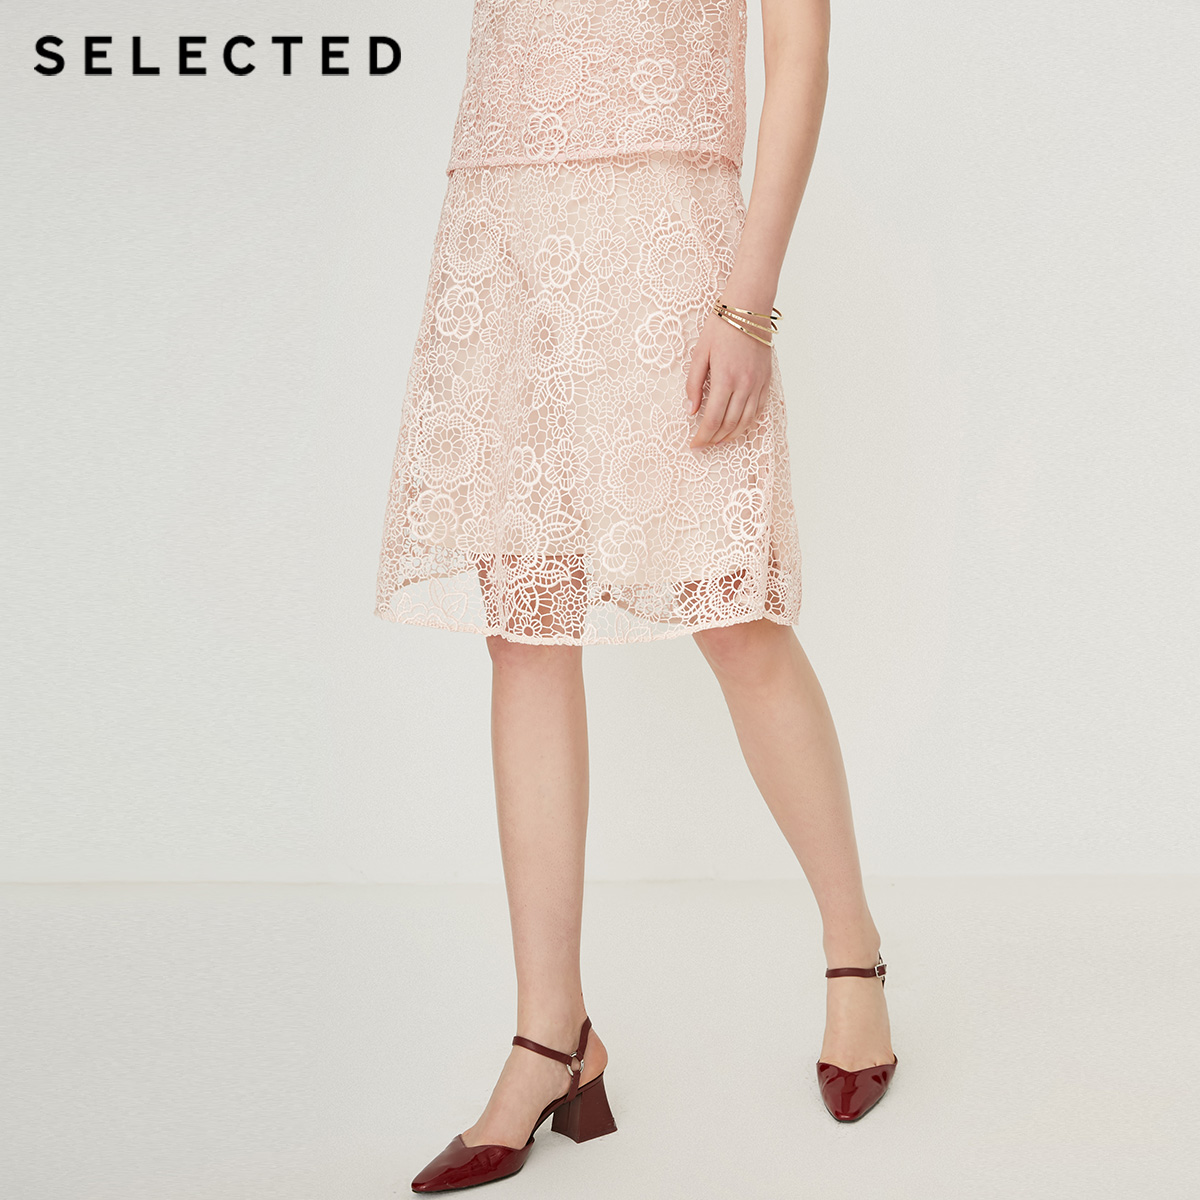 SELECTED Women's Mid-length Cut-out Lace Skirt SIG|41924C510